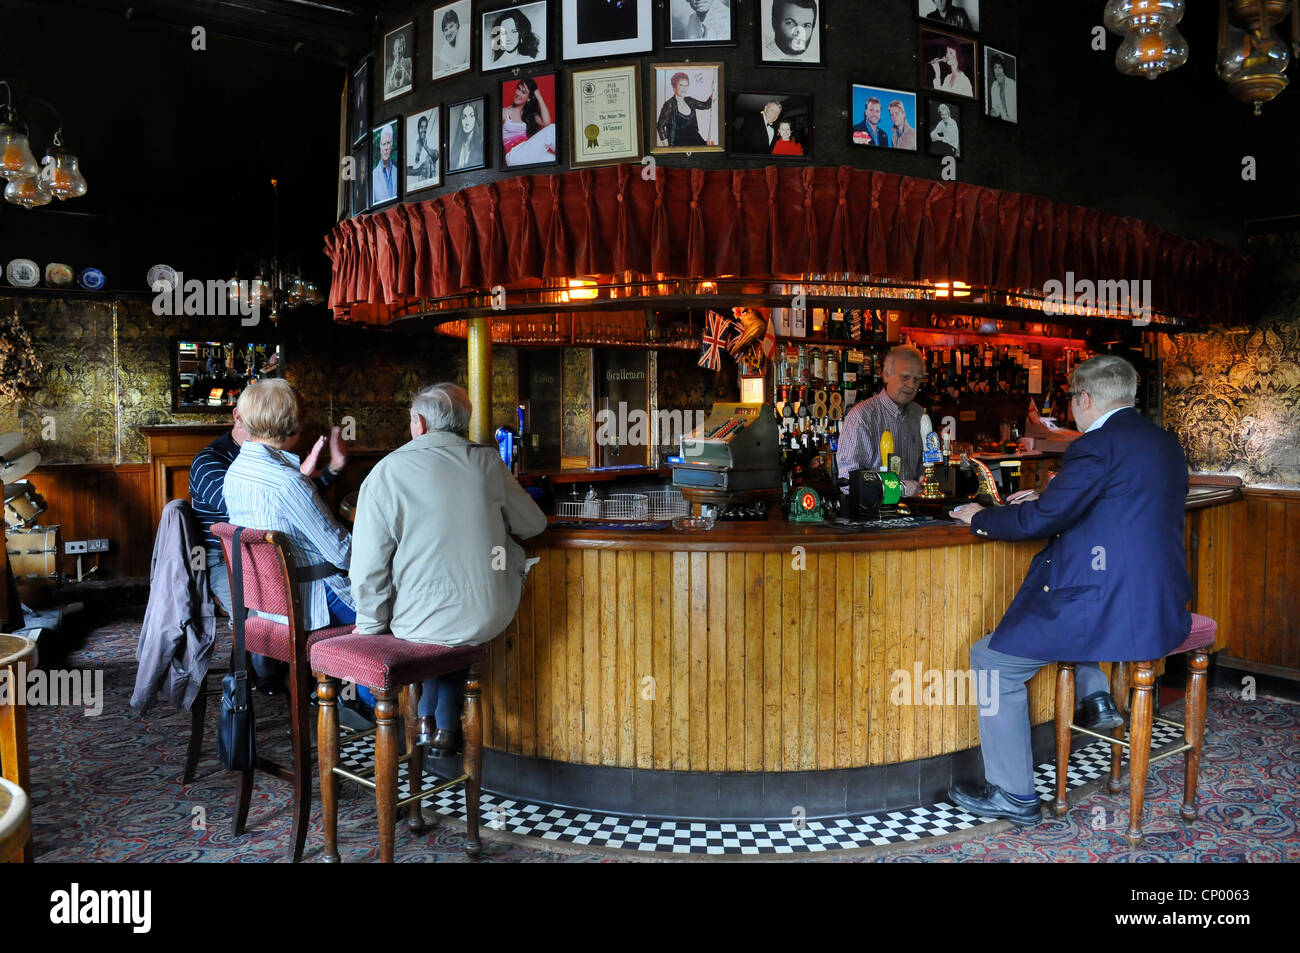 drinkers at the palm tree pub mile end london england uk stock photo 47943339 alamy. Black Bedroom Furniture Sets. Home Design Ideas